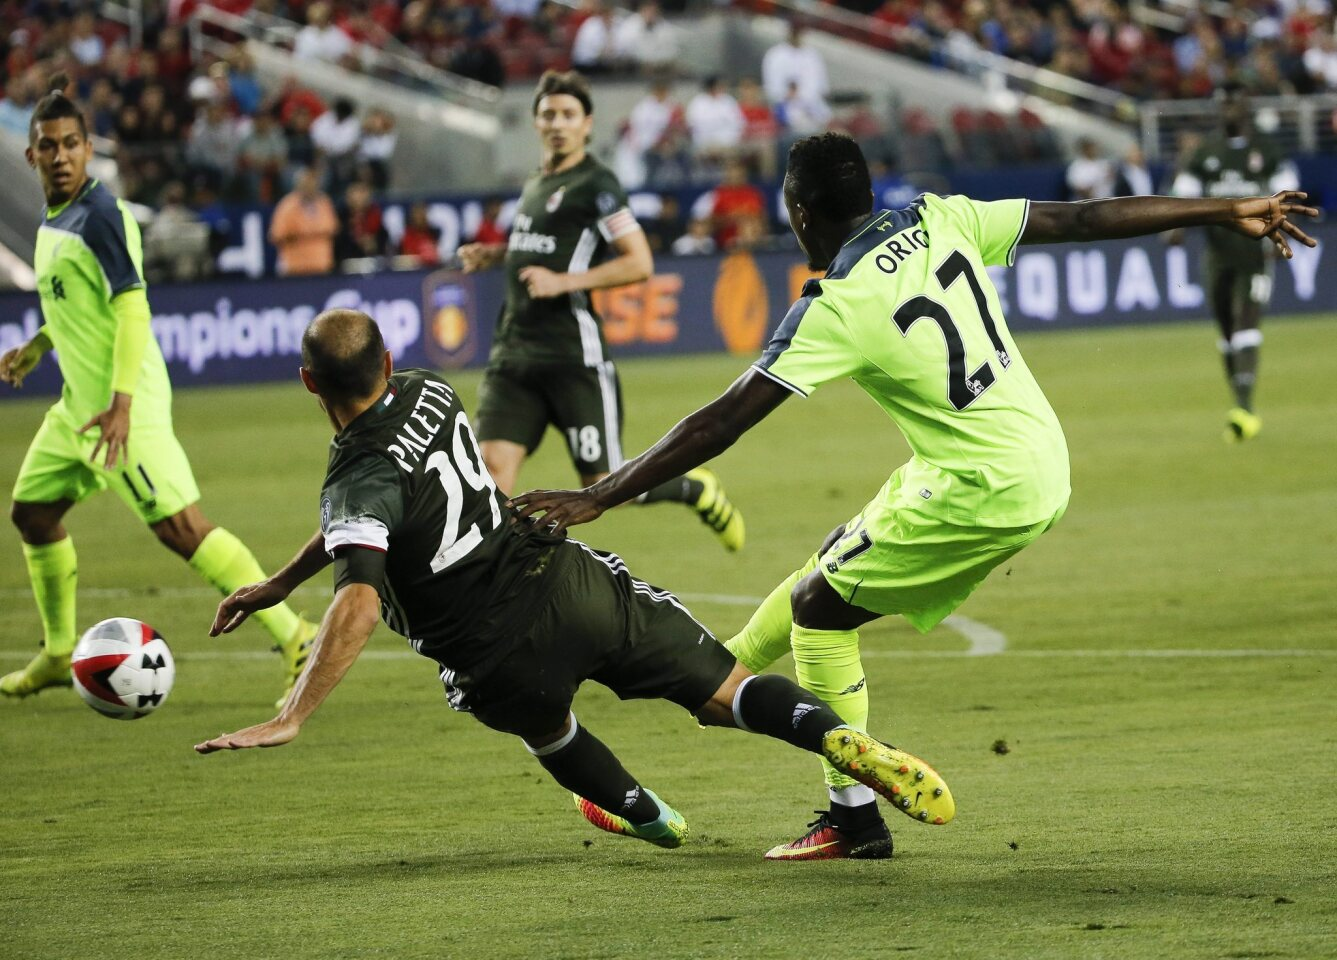 Liverpool FC's forward Divock Origi (R) scores a goal past AC Milan's Gabriel Paletta (C) during the second half of the International Champions Cup at Levi's Stadium in Santa Clara, California, USA, 30 July 2016. Liverpool FC defeated AC Milan.